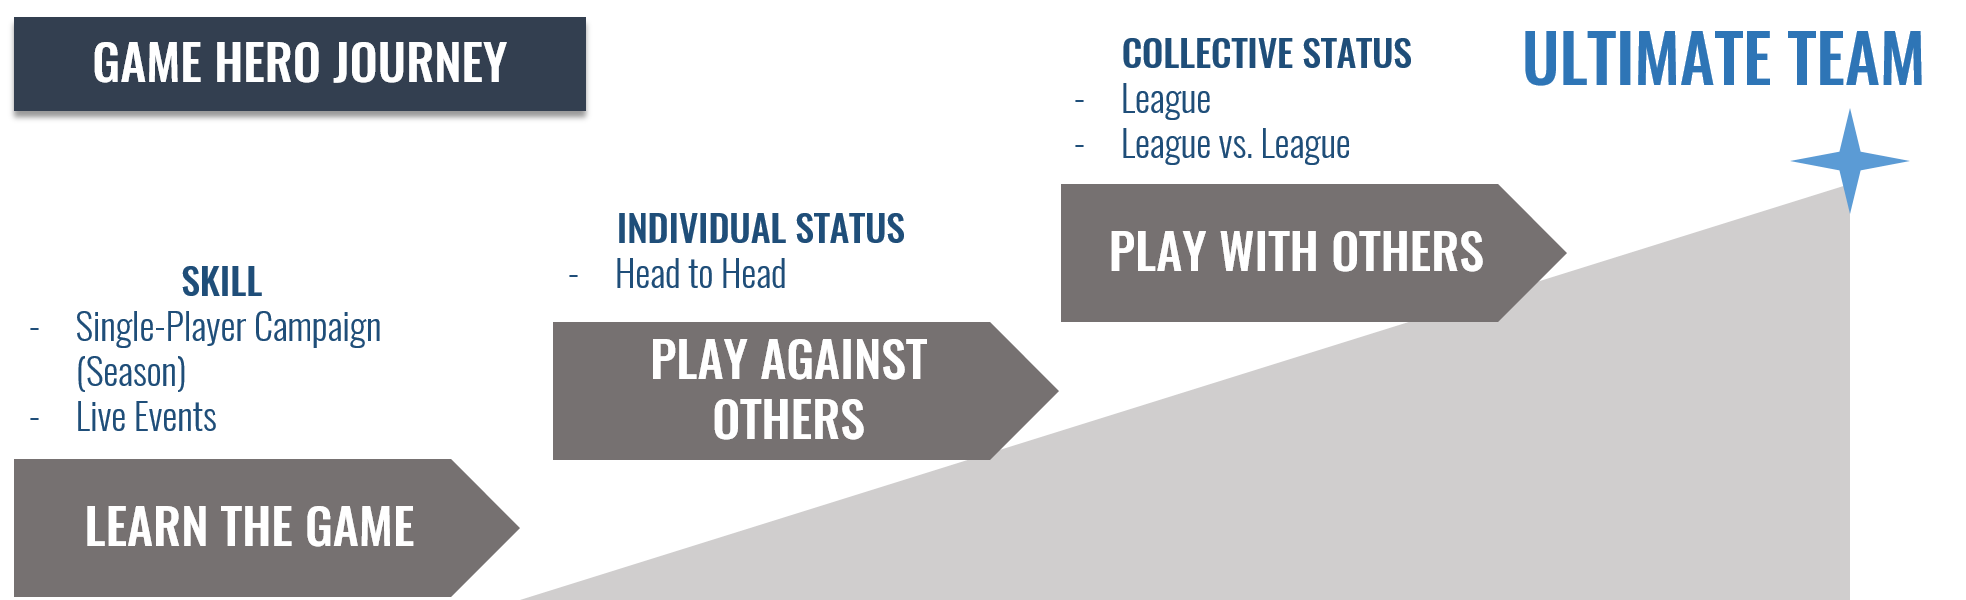 """The Game Hero Journey in the EA Sports Mobile titles is about making the """"Ultimate Team"""", and all core systems reinforce that aspiration"""